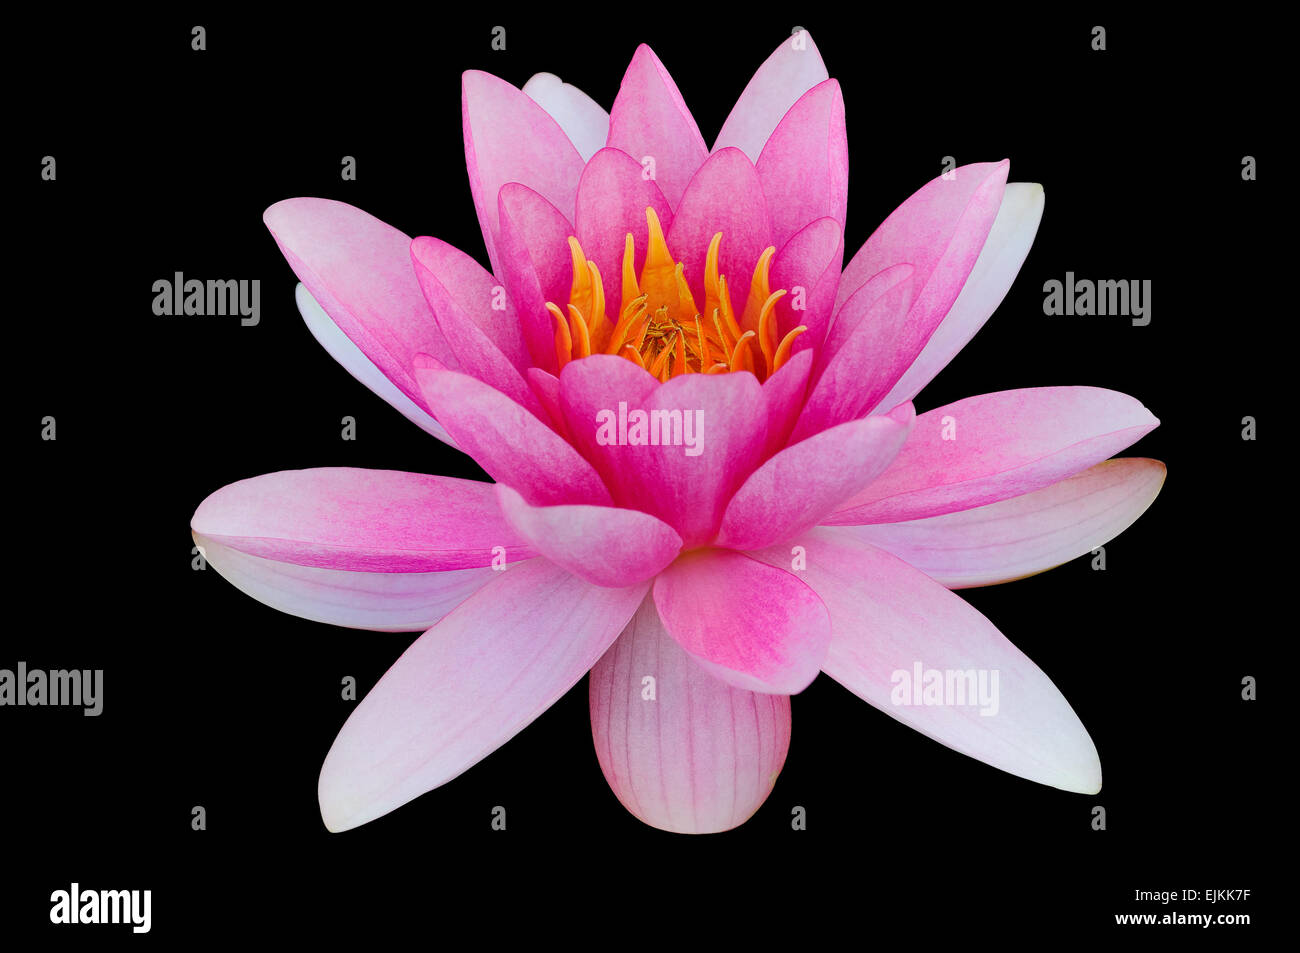 Pink water lily black background clip art clipping path - Stock Image